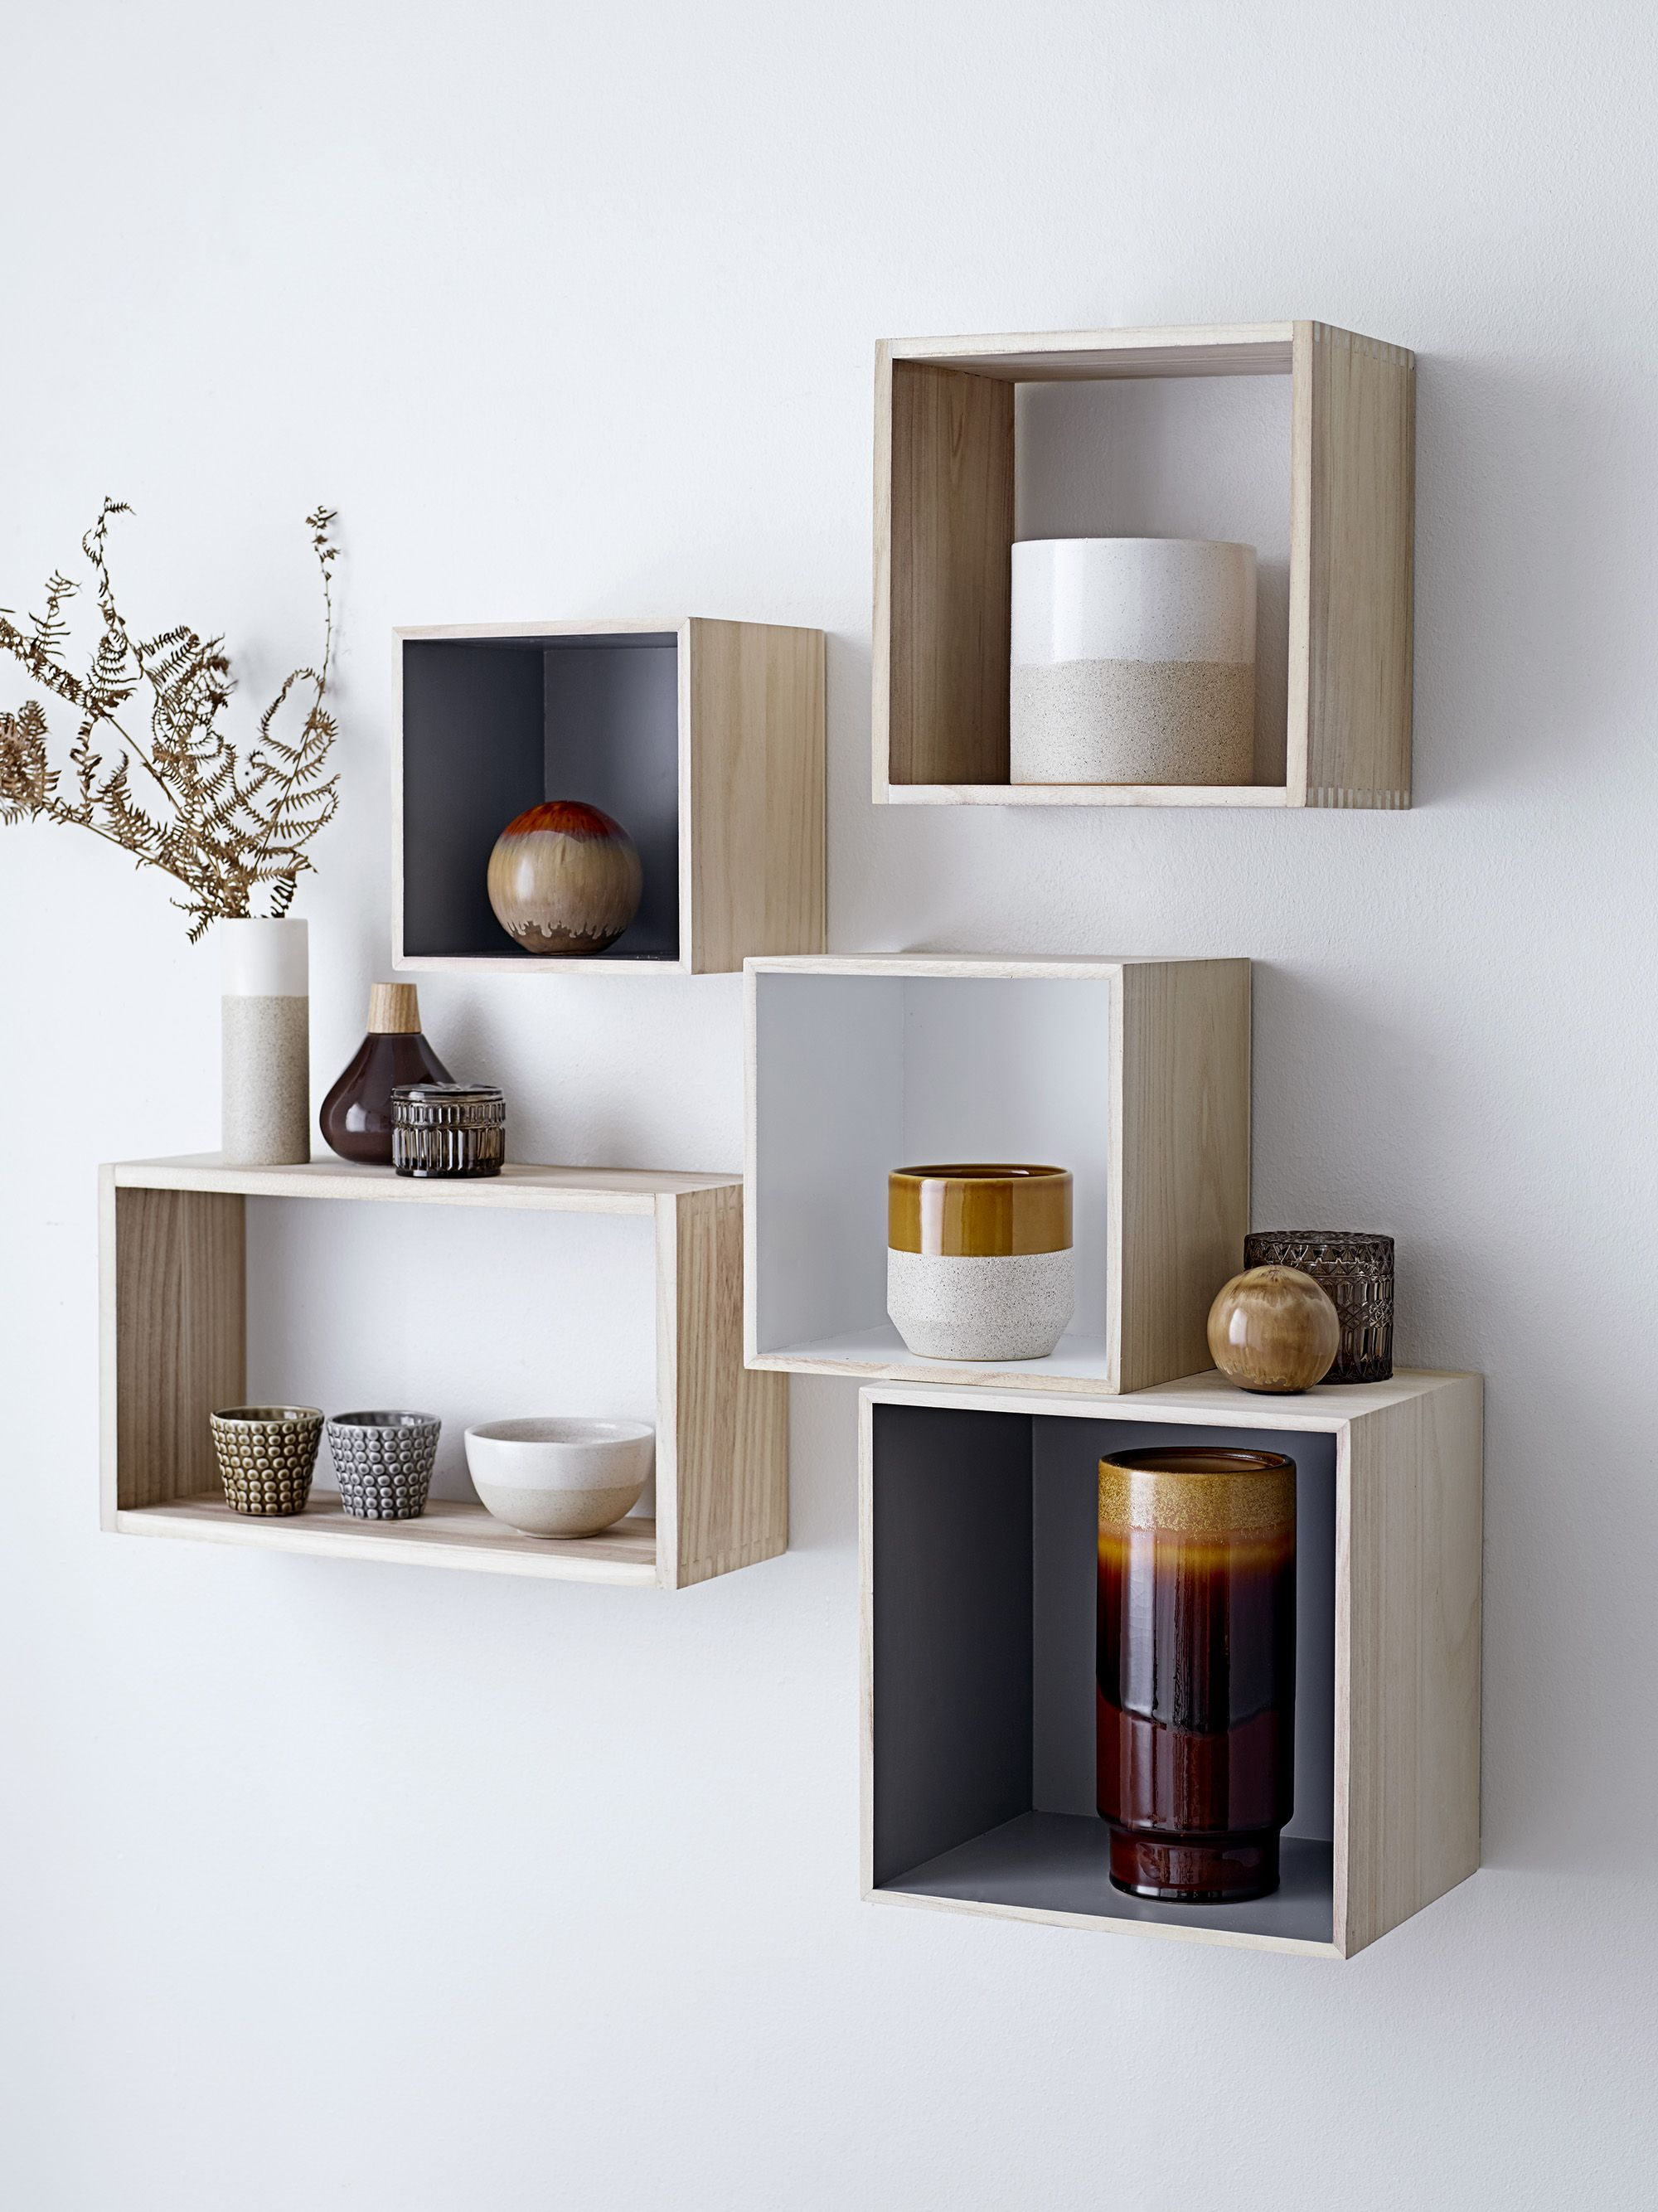 Create A Personal Display With Stylish Bo Design By Bloomingville Wall Storage